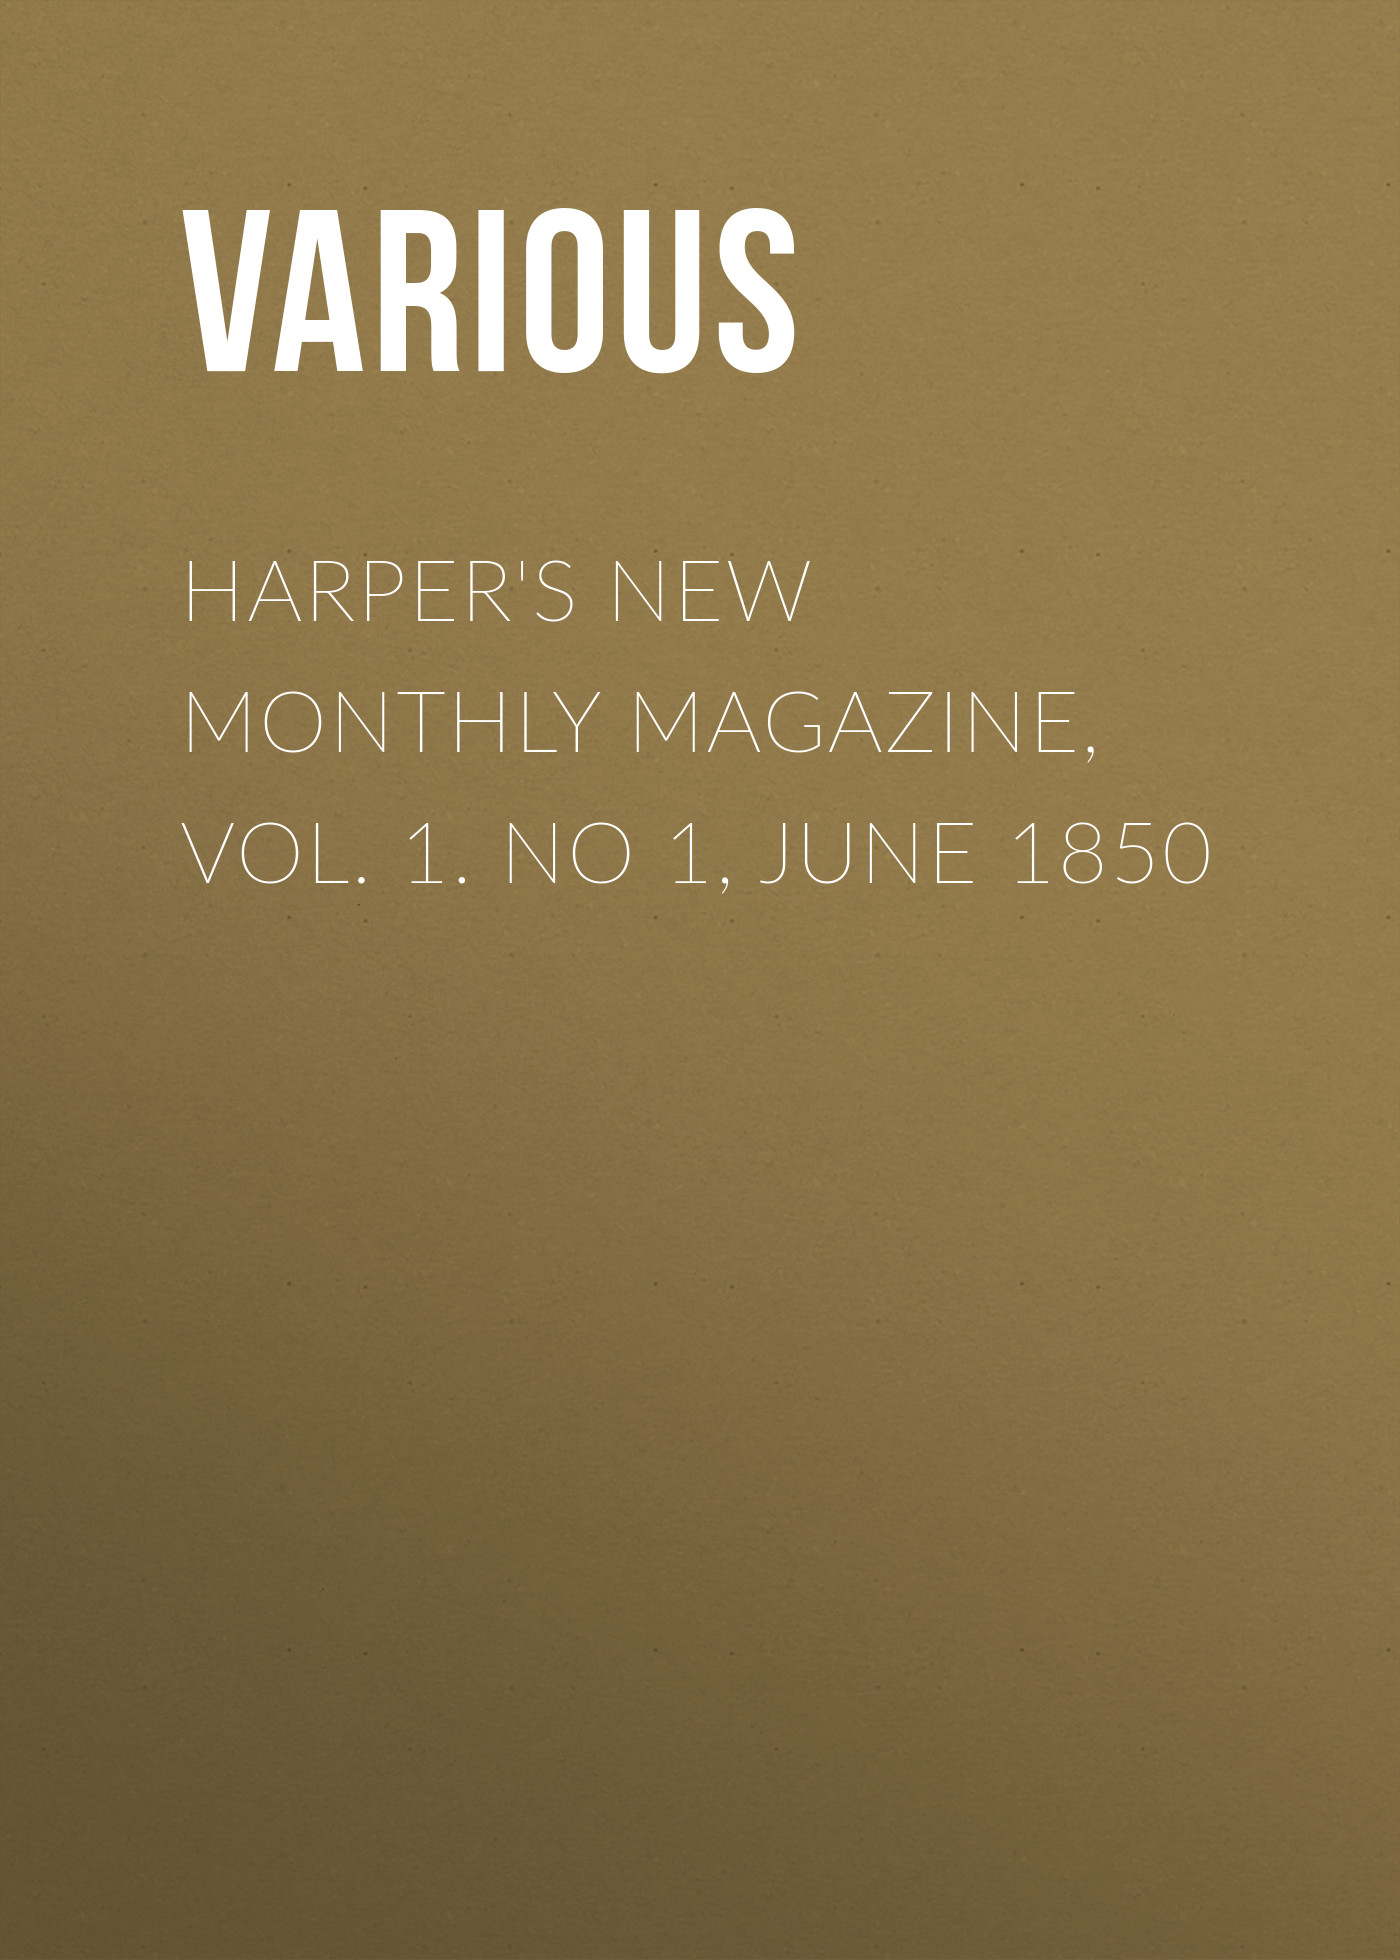 Various Harper's New Monthly Magazine, Vol. 1. No 1, June 1850 hoodz dvd magazine issue 1